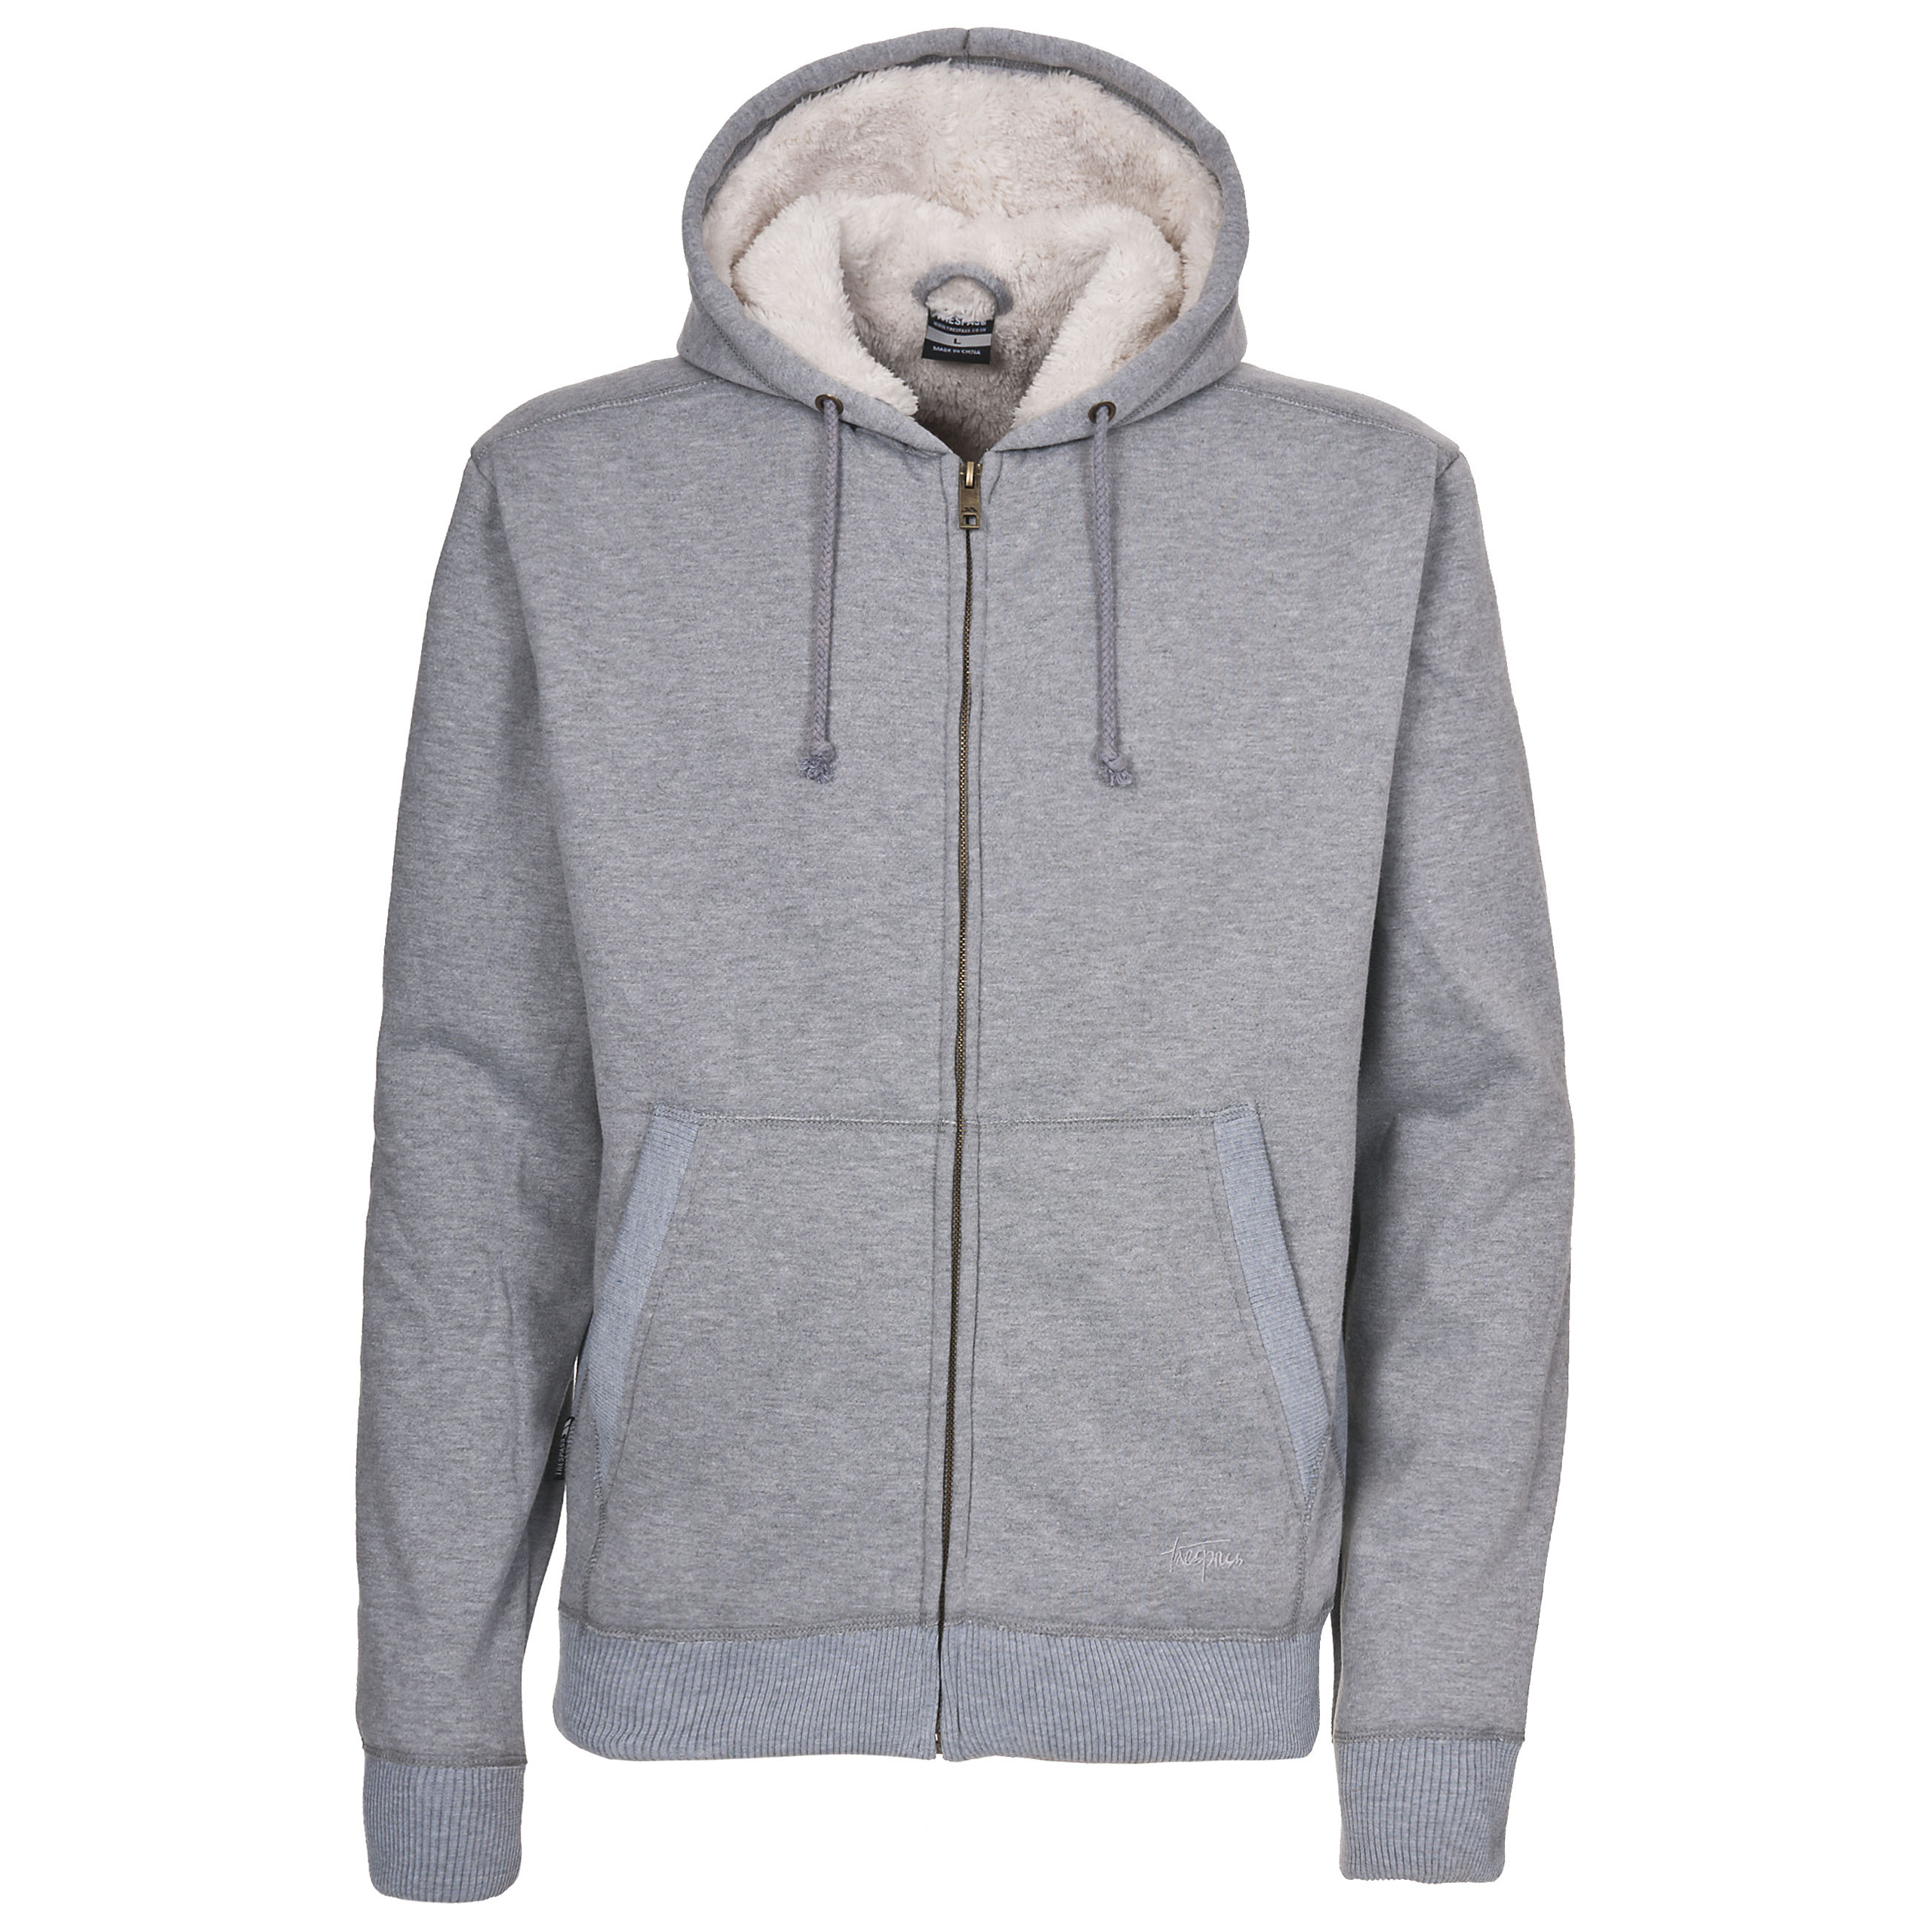 Sep 18,  · The Patagonia R1 Hoody also sports a hood, and while it is made of a much thinner fleece, that feature helped bump it up in the warmth ratings over a similarly thin fleece .